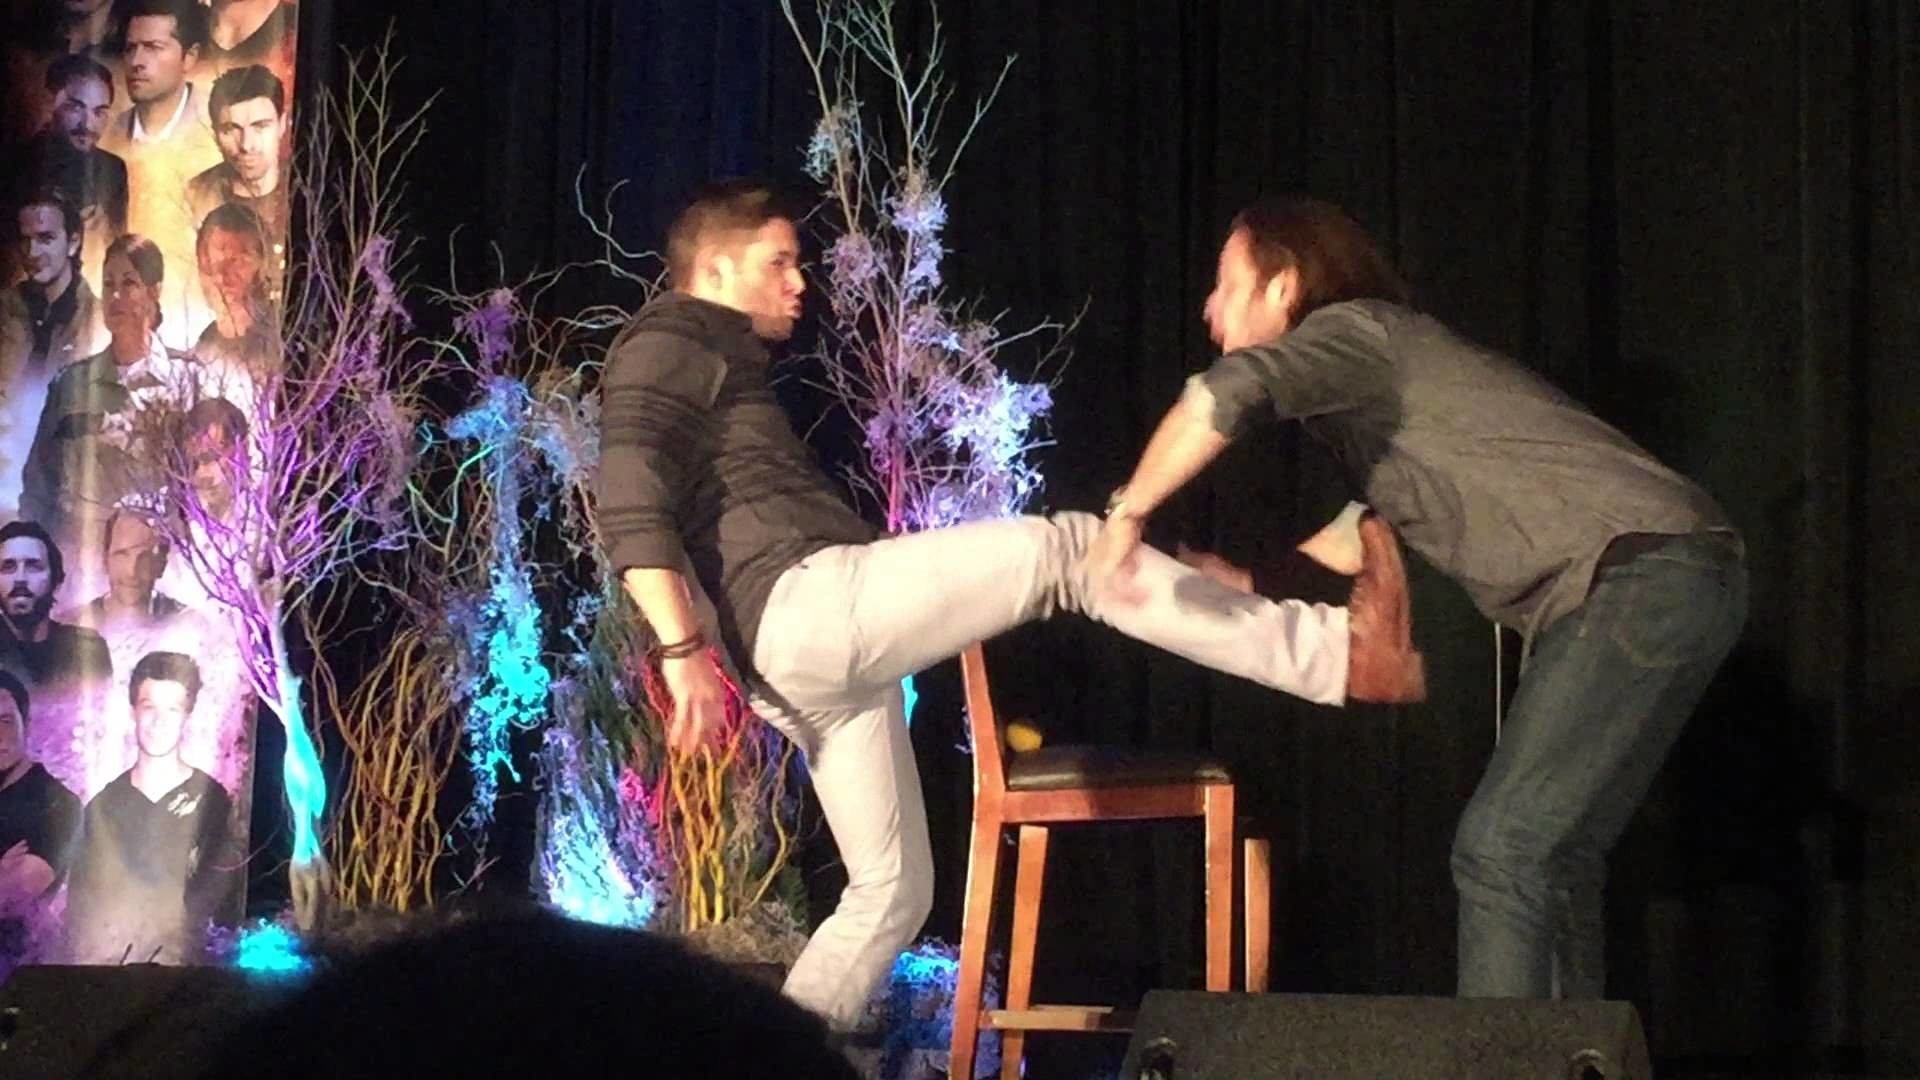 Jared Padalecki and Jensen Ackles – slow motion fight – Houston Convention  2015 – YouTube